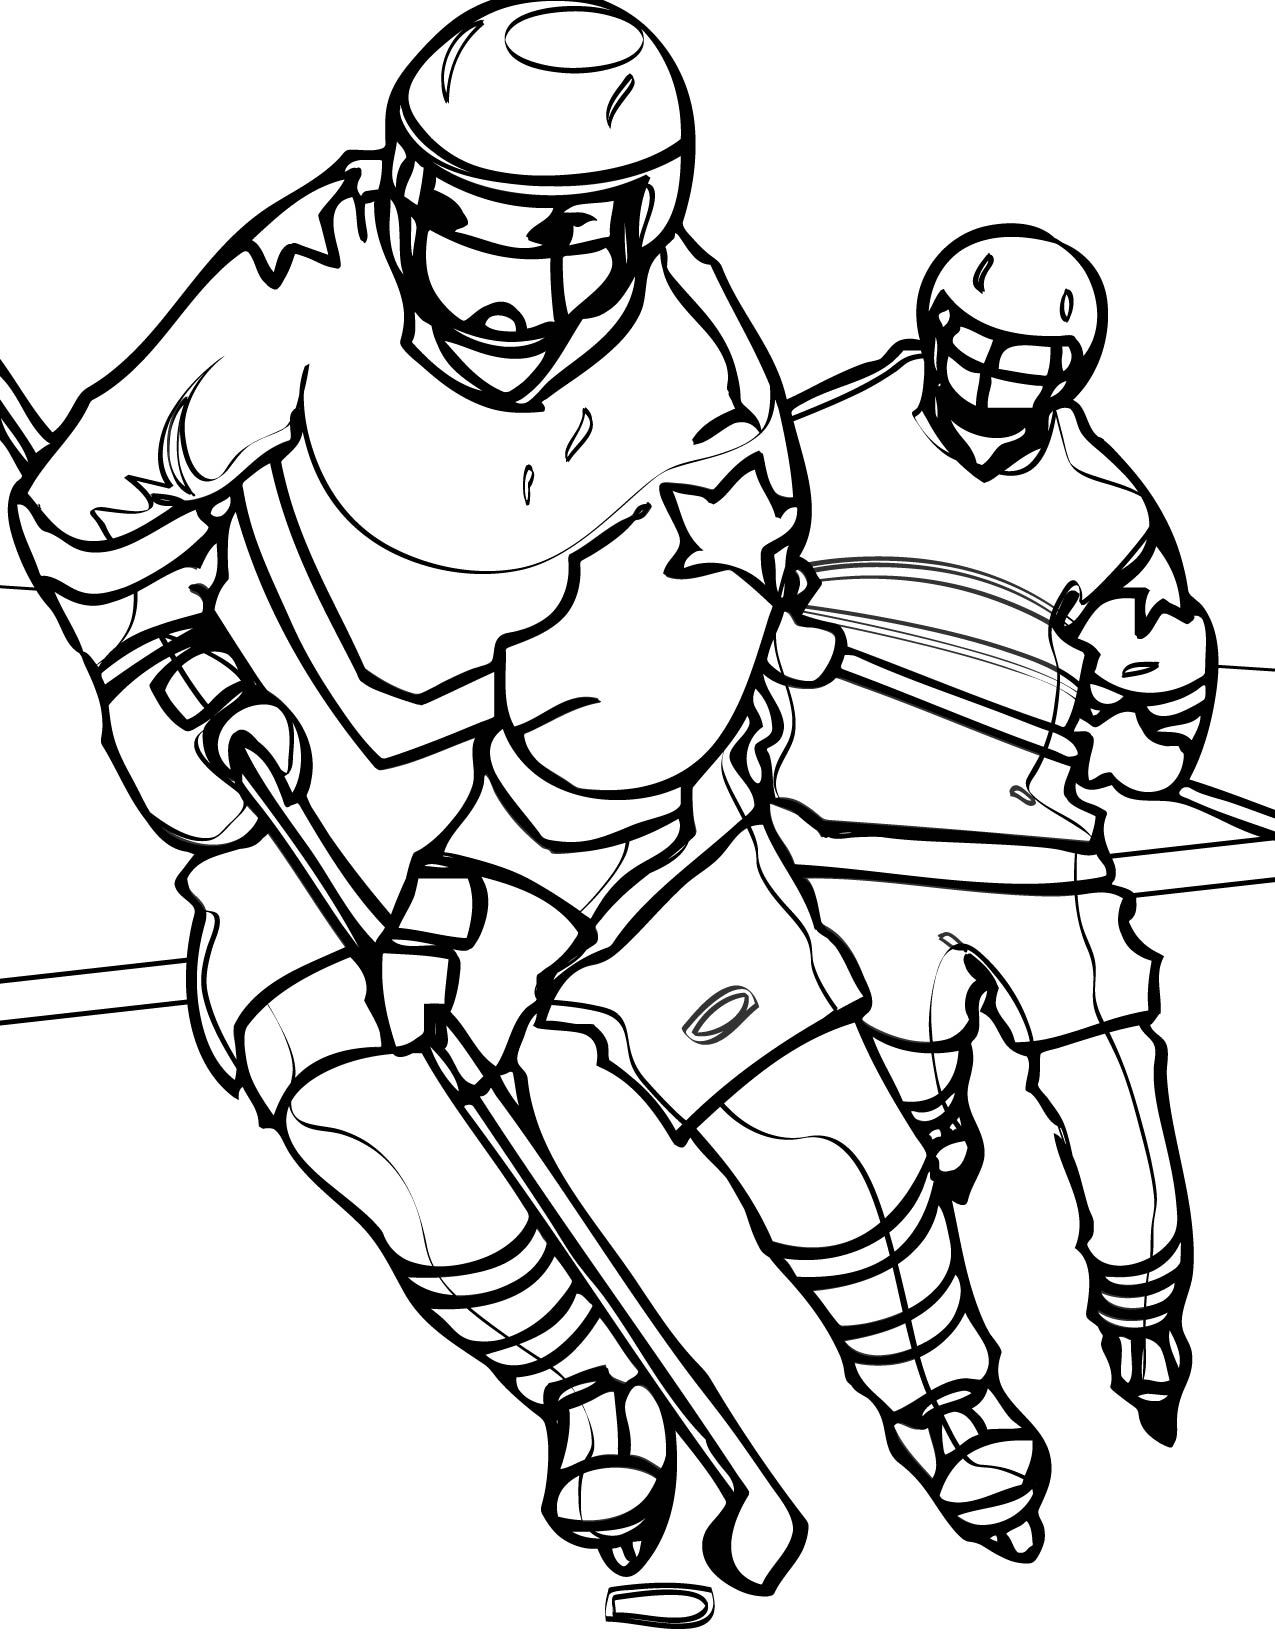 sports day colouring sports coloring pages for kids at getcoloringscom free colouring sports day